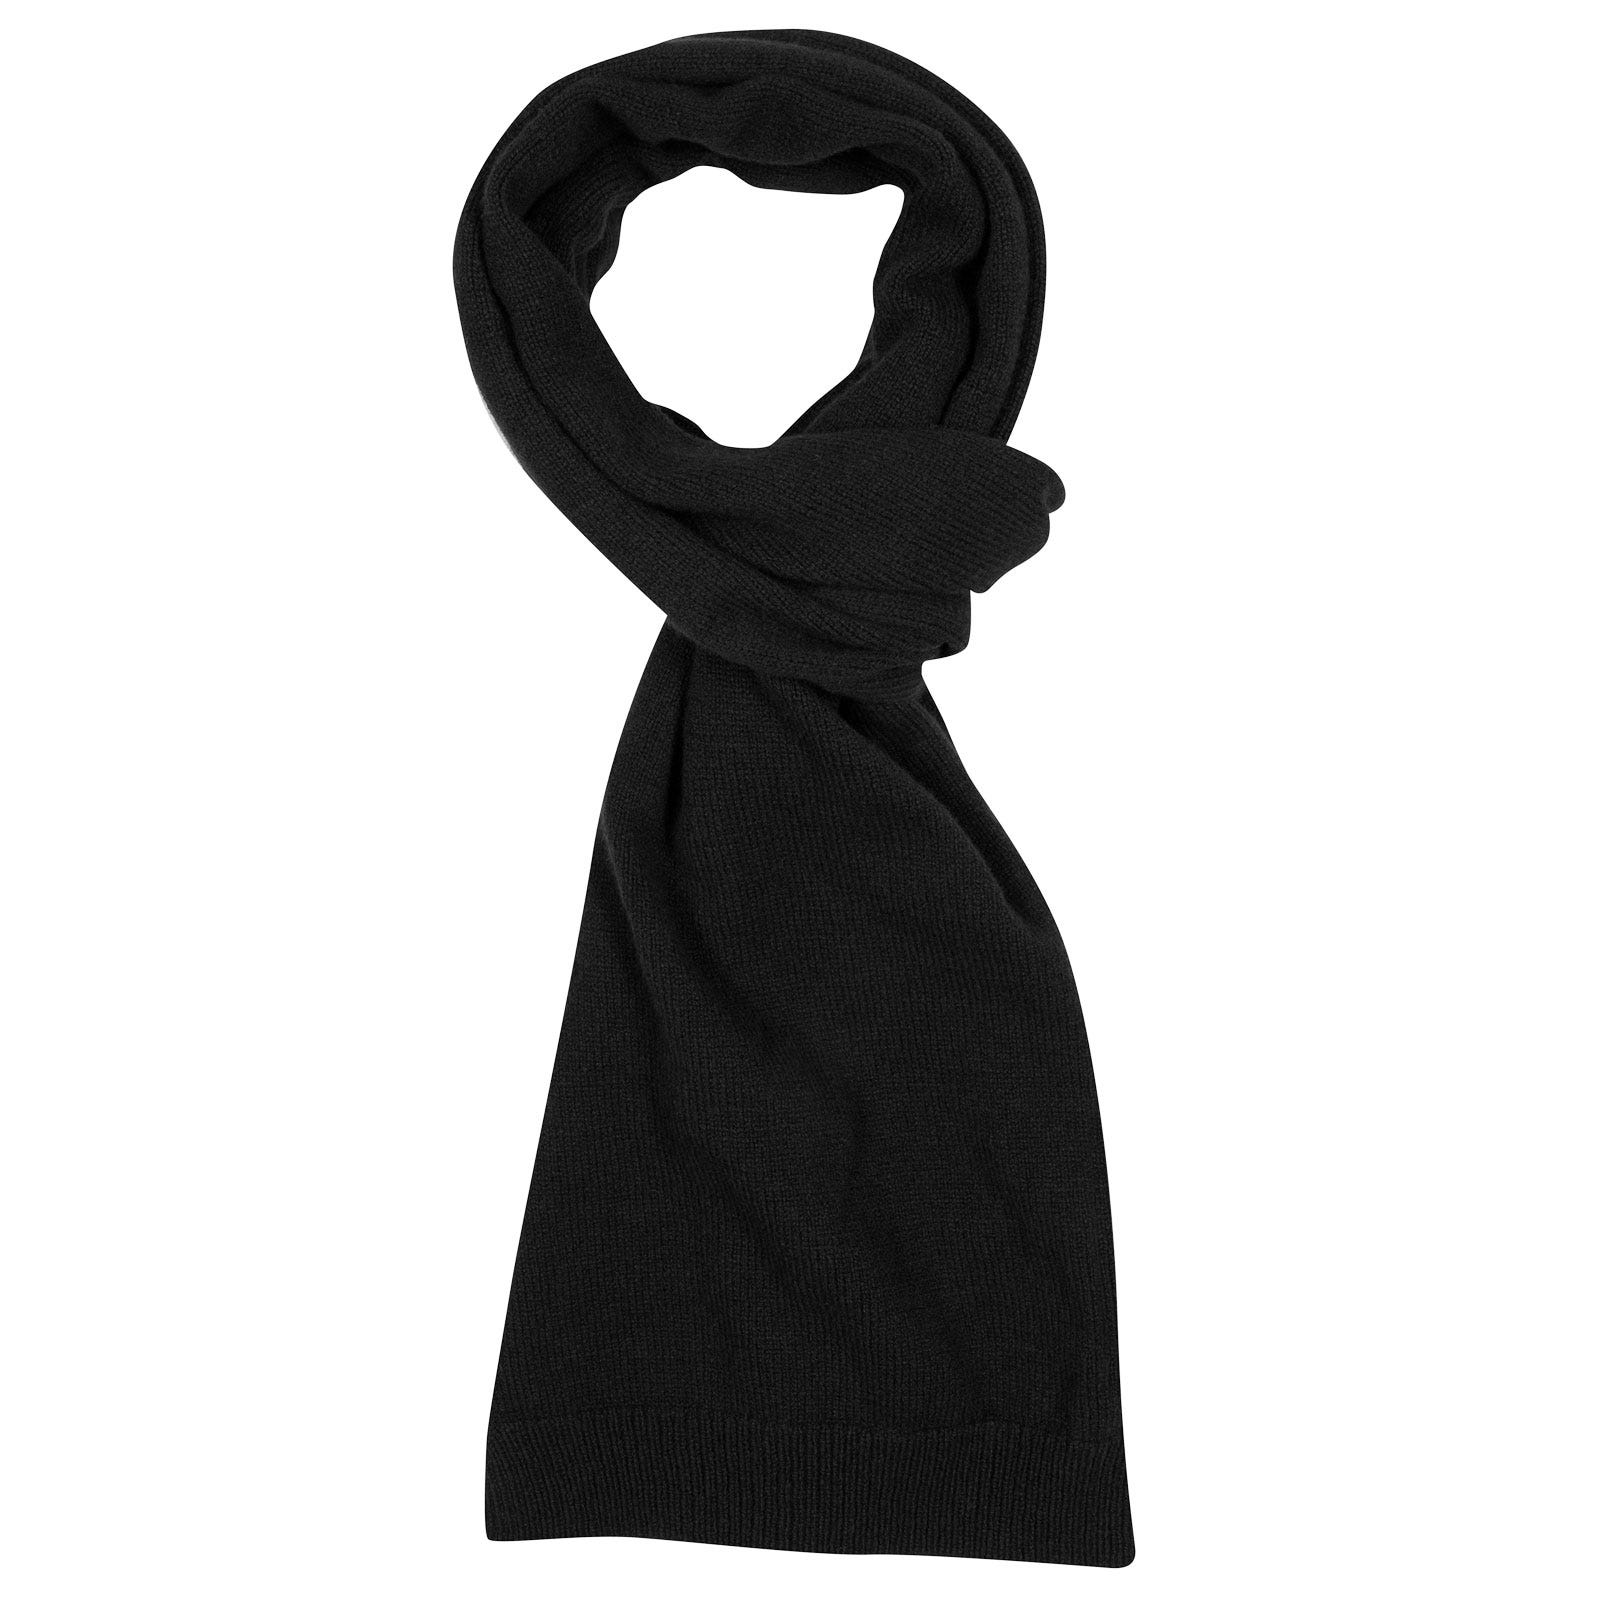 John Smedley star Wool and Cashmere Scarf in Black-ONE